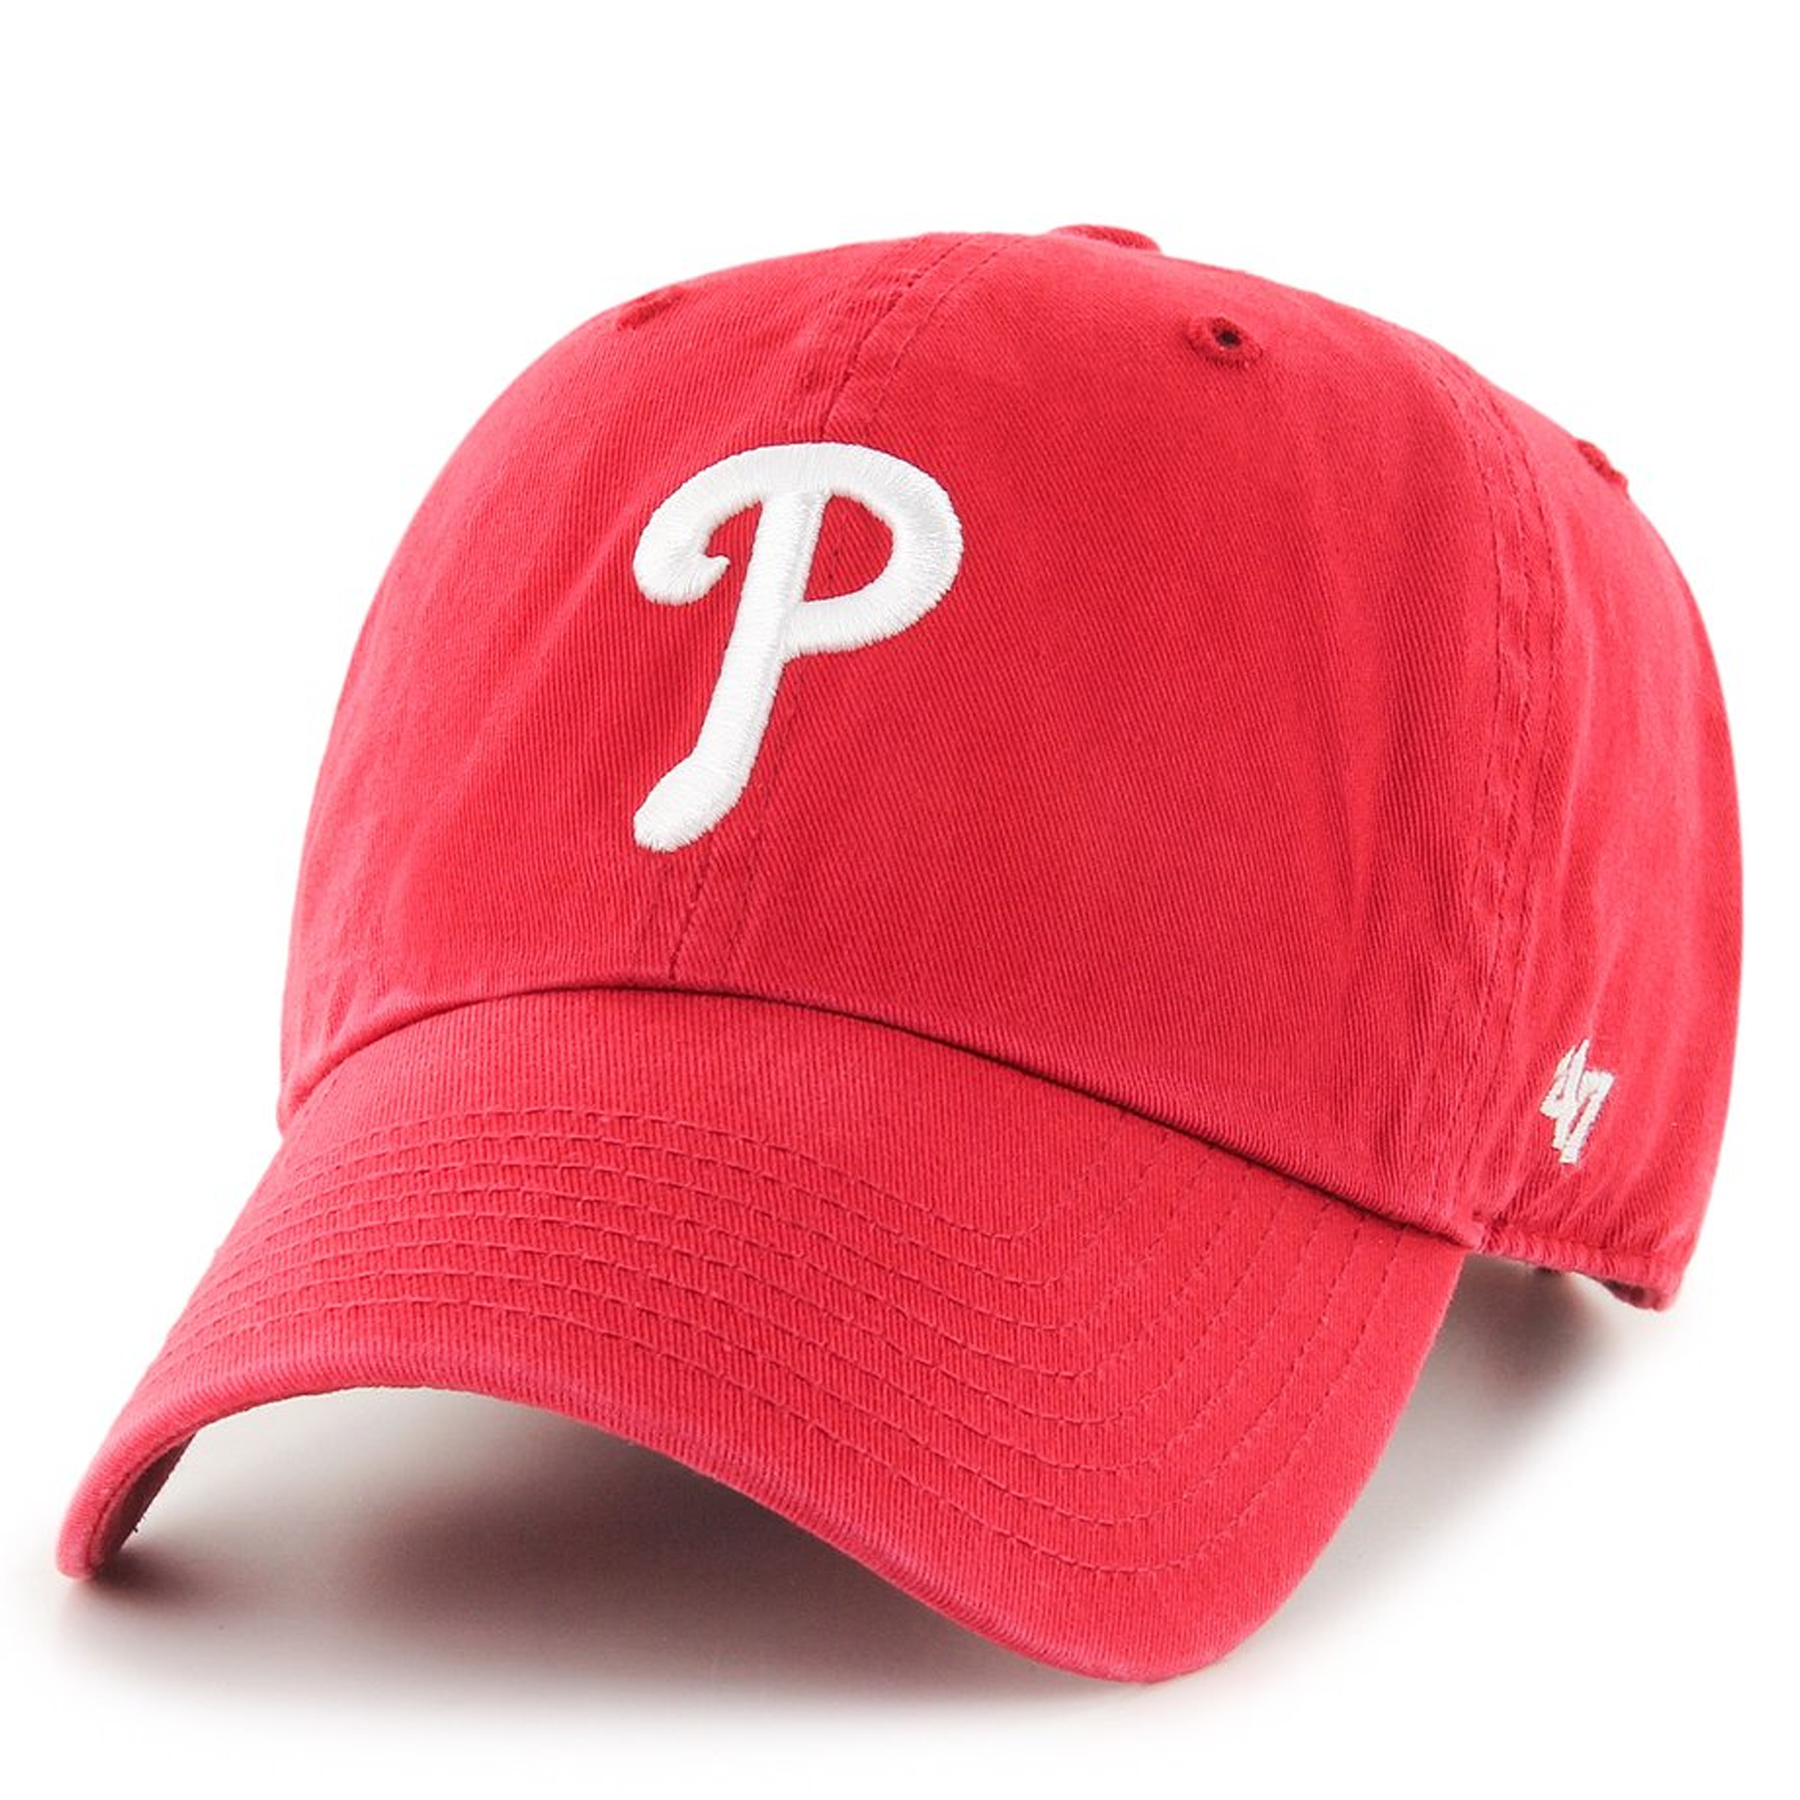 on the front of the women s philadelphia phillies red dad hat is the philadelphia  phillies logo 5da97e1fa